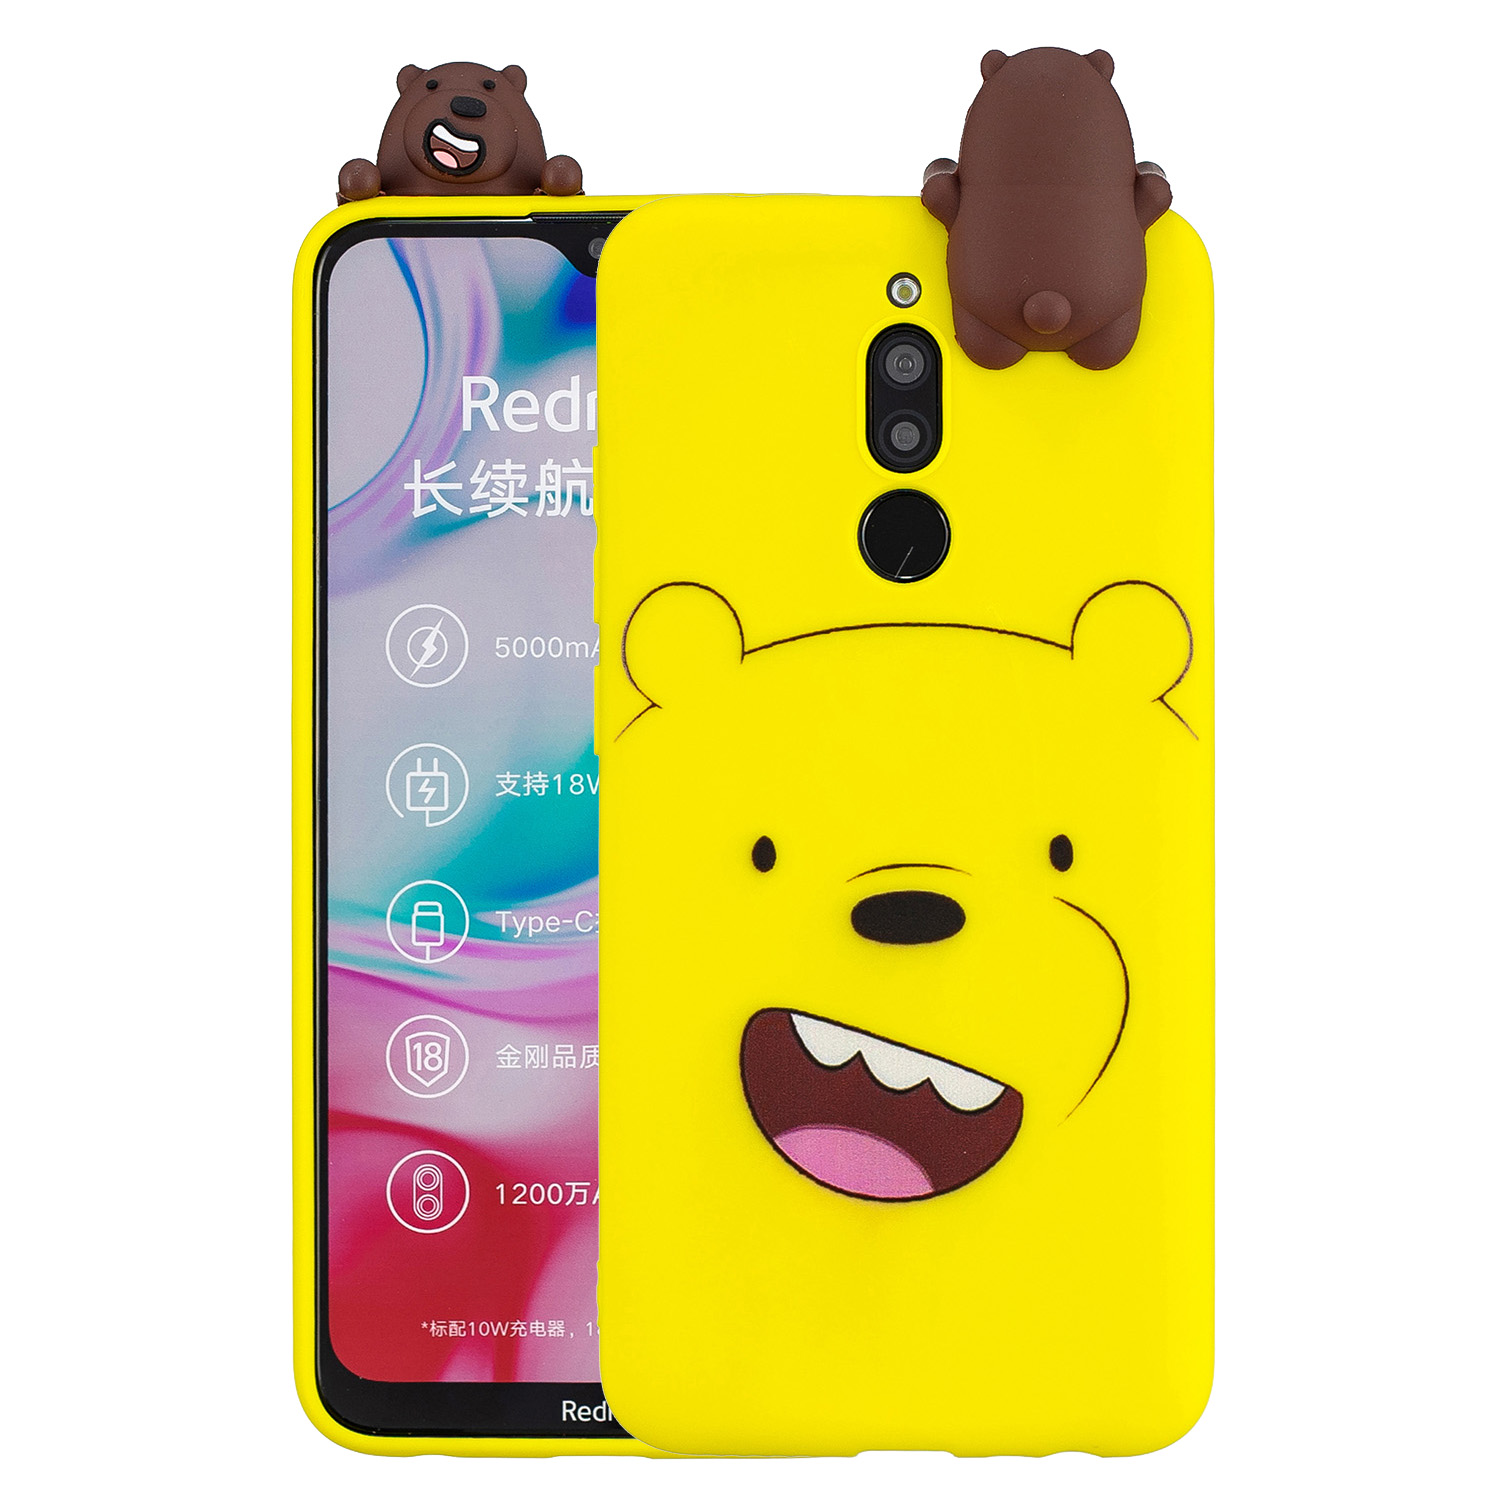 For Redmi 8/8A/5/Note 8T Mobile Phone Case Cute Cellphone Shell Soft TPU Cover with Cartoon Pig Duck Bear Kitten Lovely Pattern Yellow